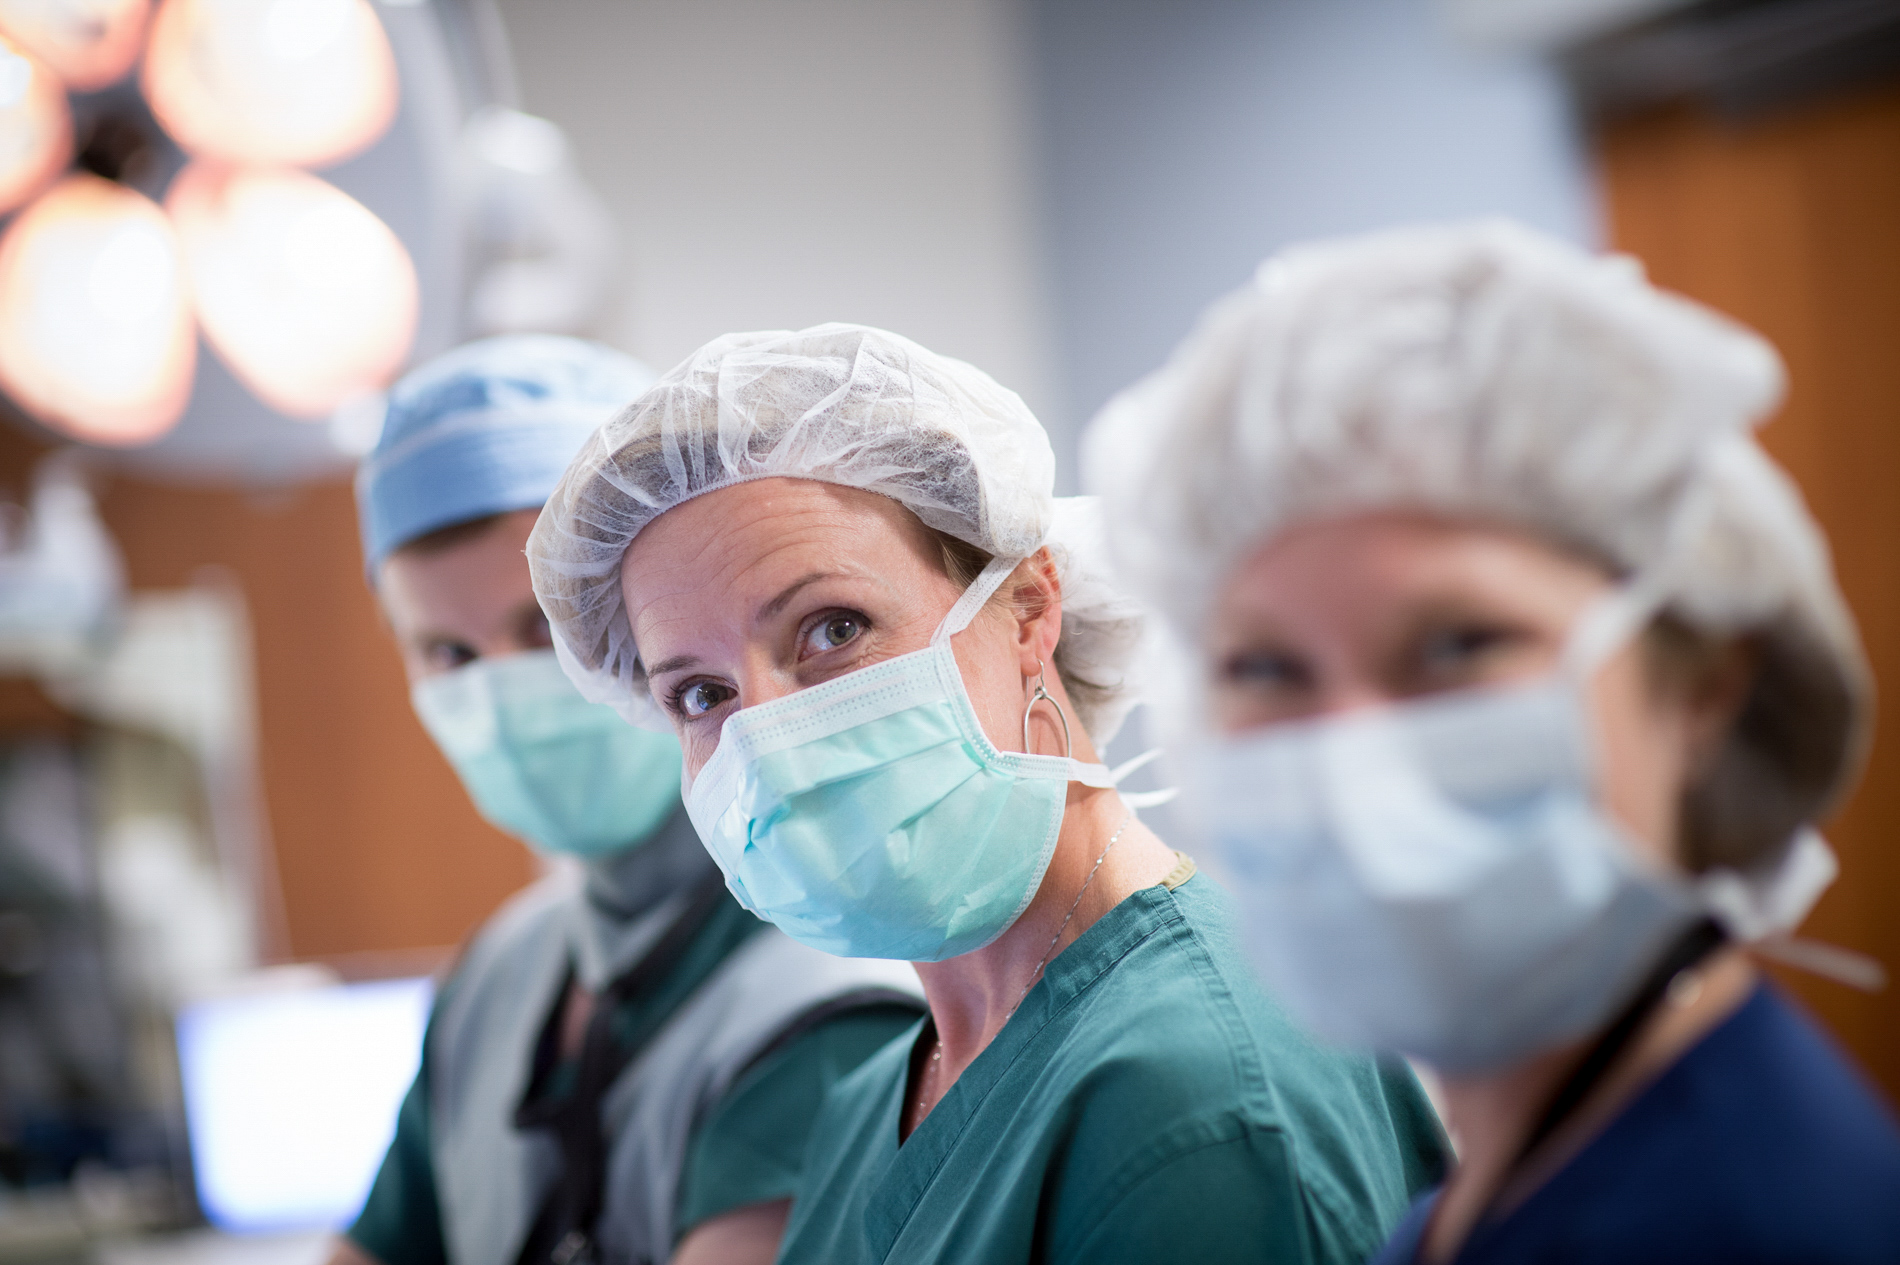 Pause During Surgery